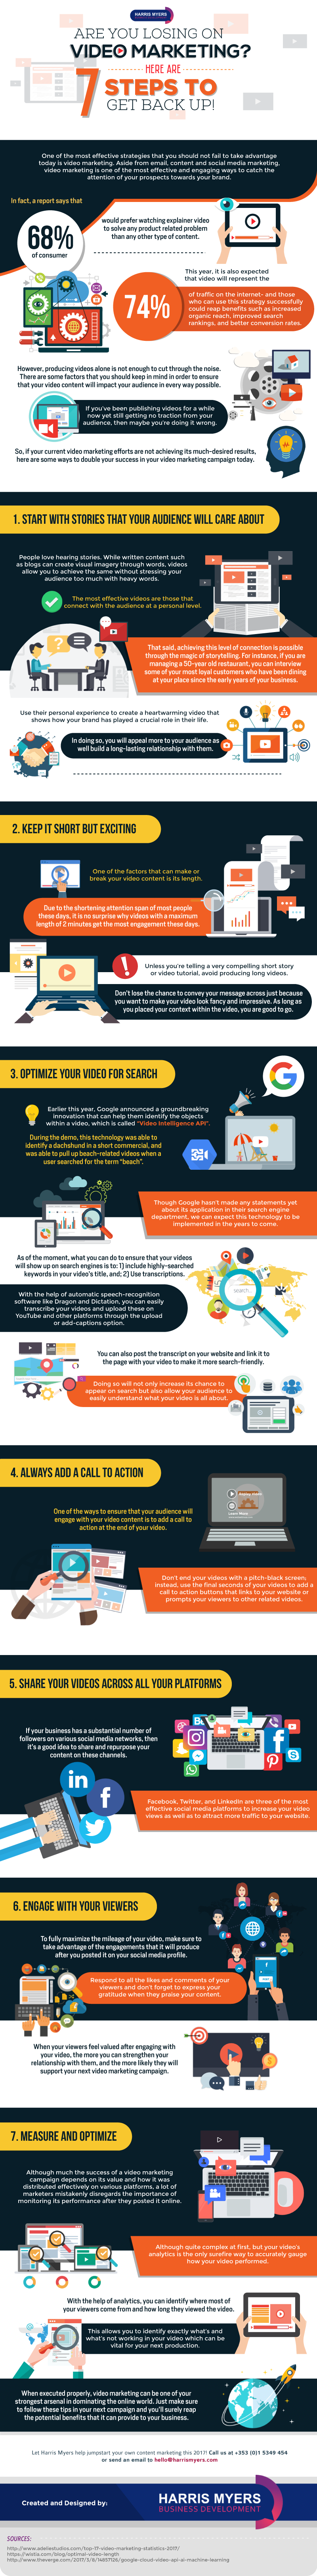 Are You Losing on Video Marketing? Here are 7 Steps to Get Back Up! - #Infographic